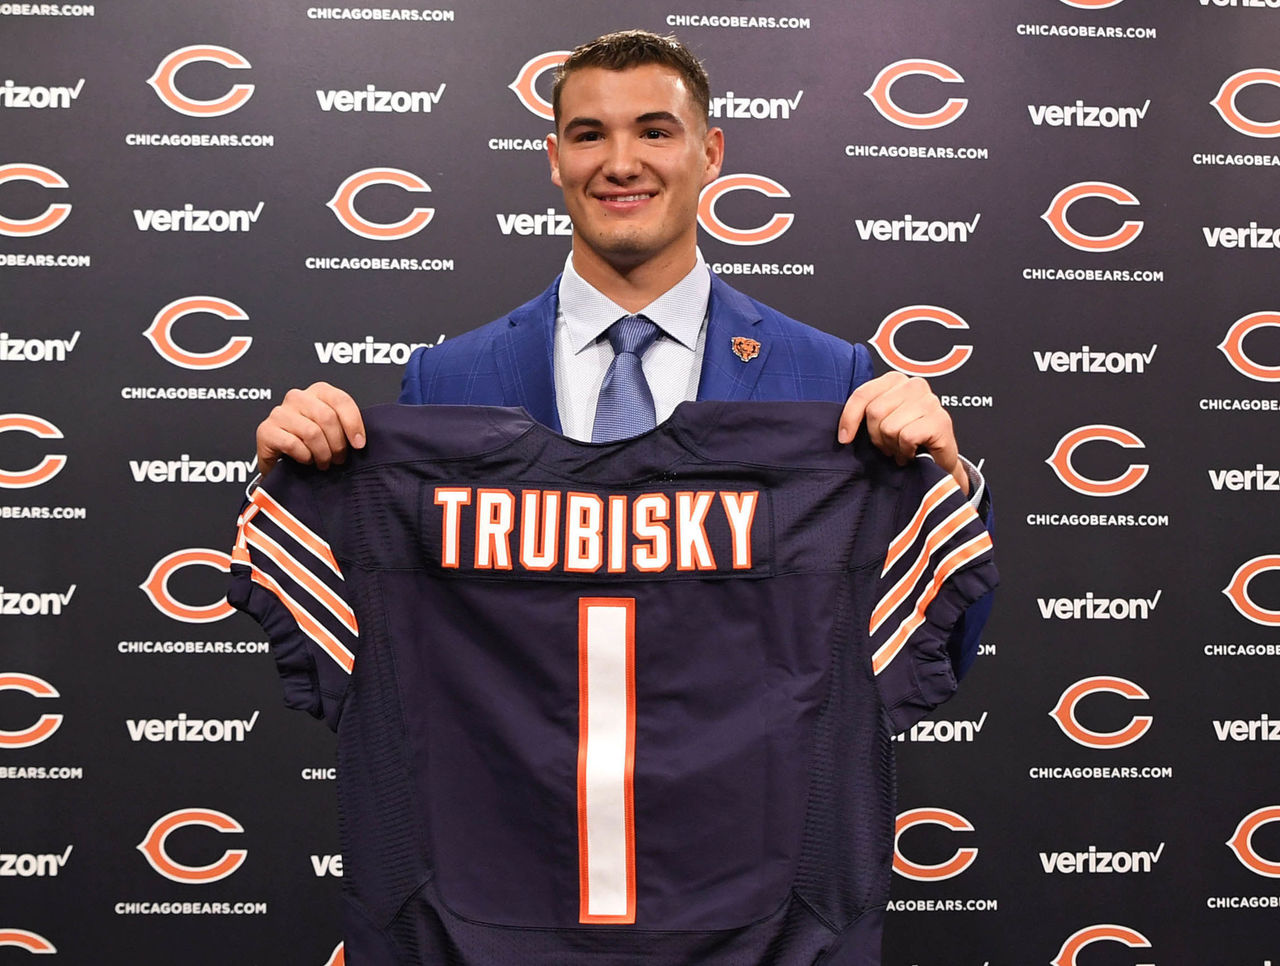 Cropped 2017 04 28t200434z 1297740647 nocid rtrmadp 3 nfl chicago bears mitchell trubisky press conference